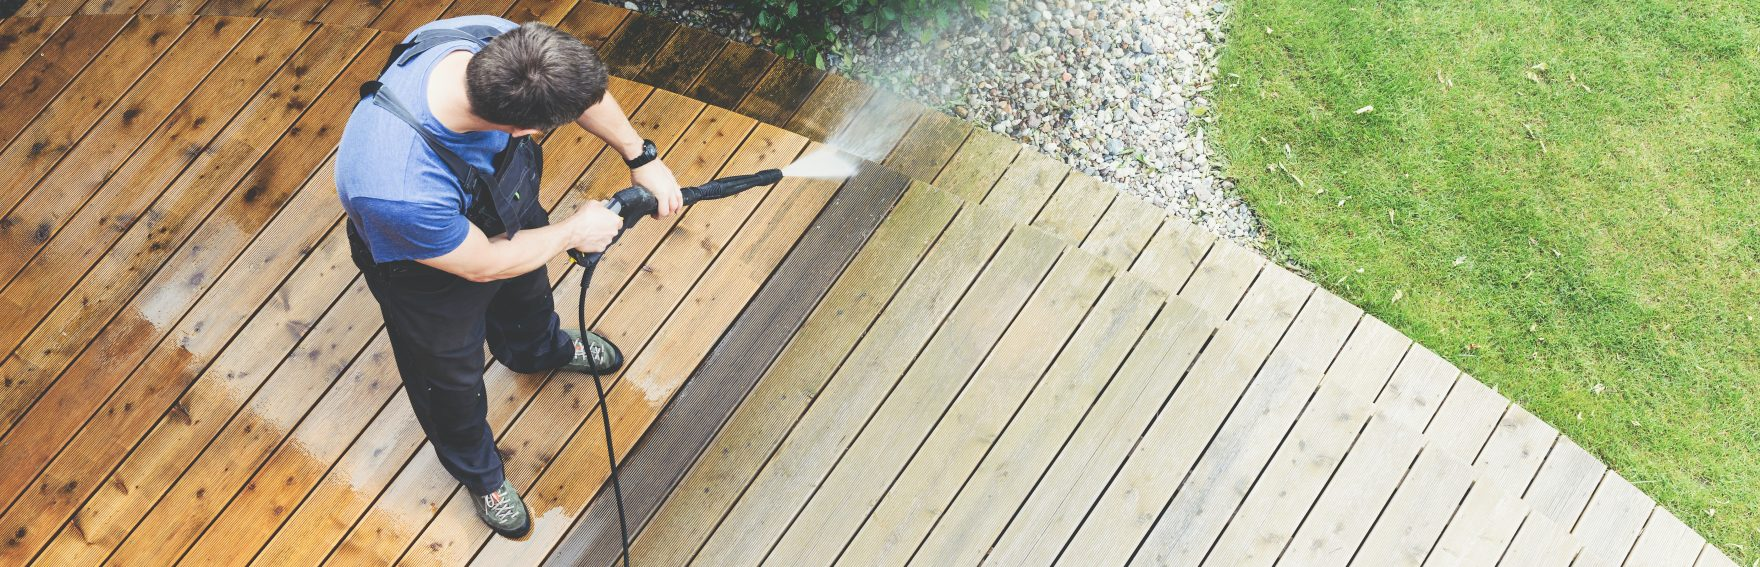 Media Blasting vs Sandblasting Phoenix man cleaning terrace with a power washer - high water pressure cleaner on wooden terrace surface